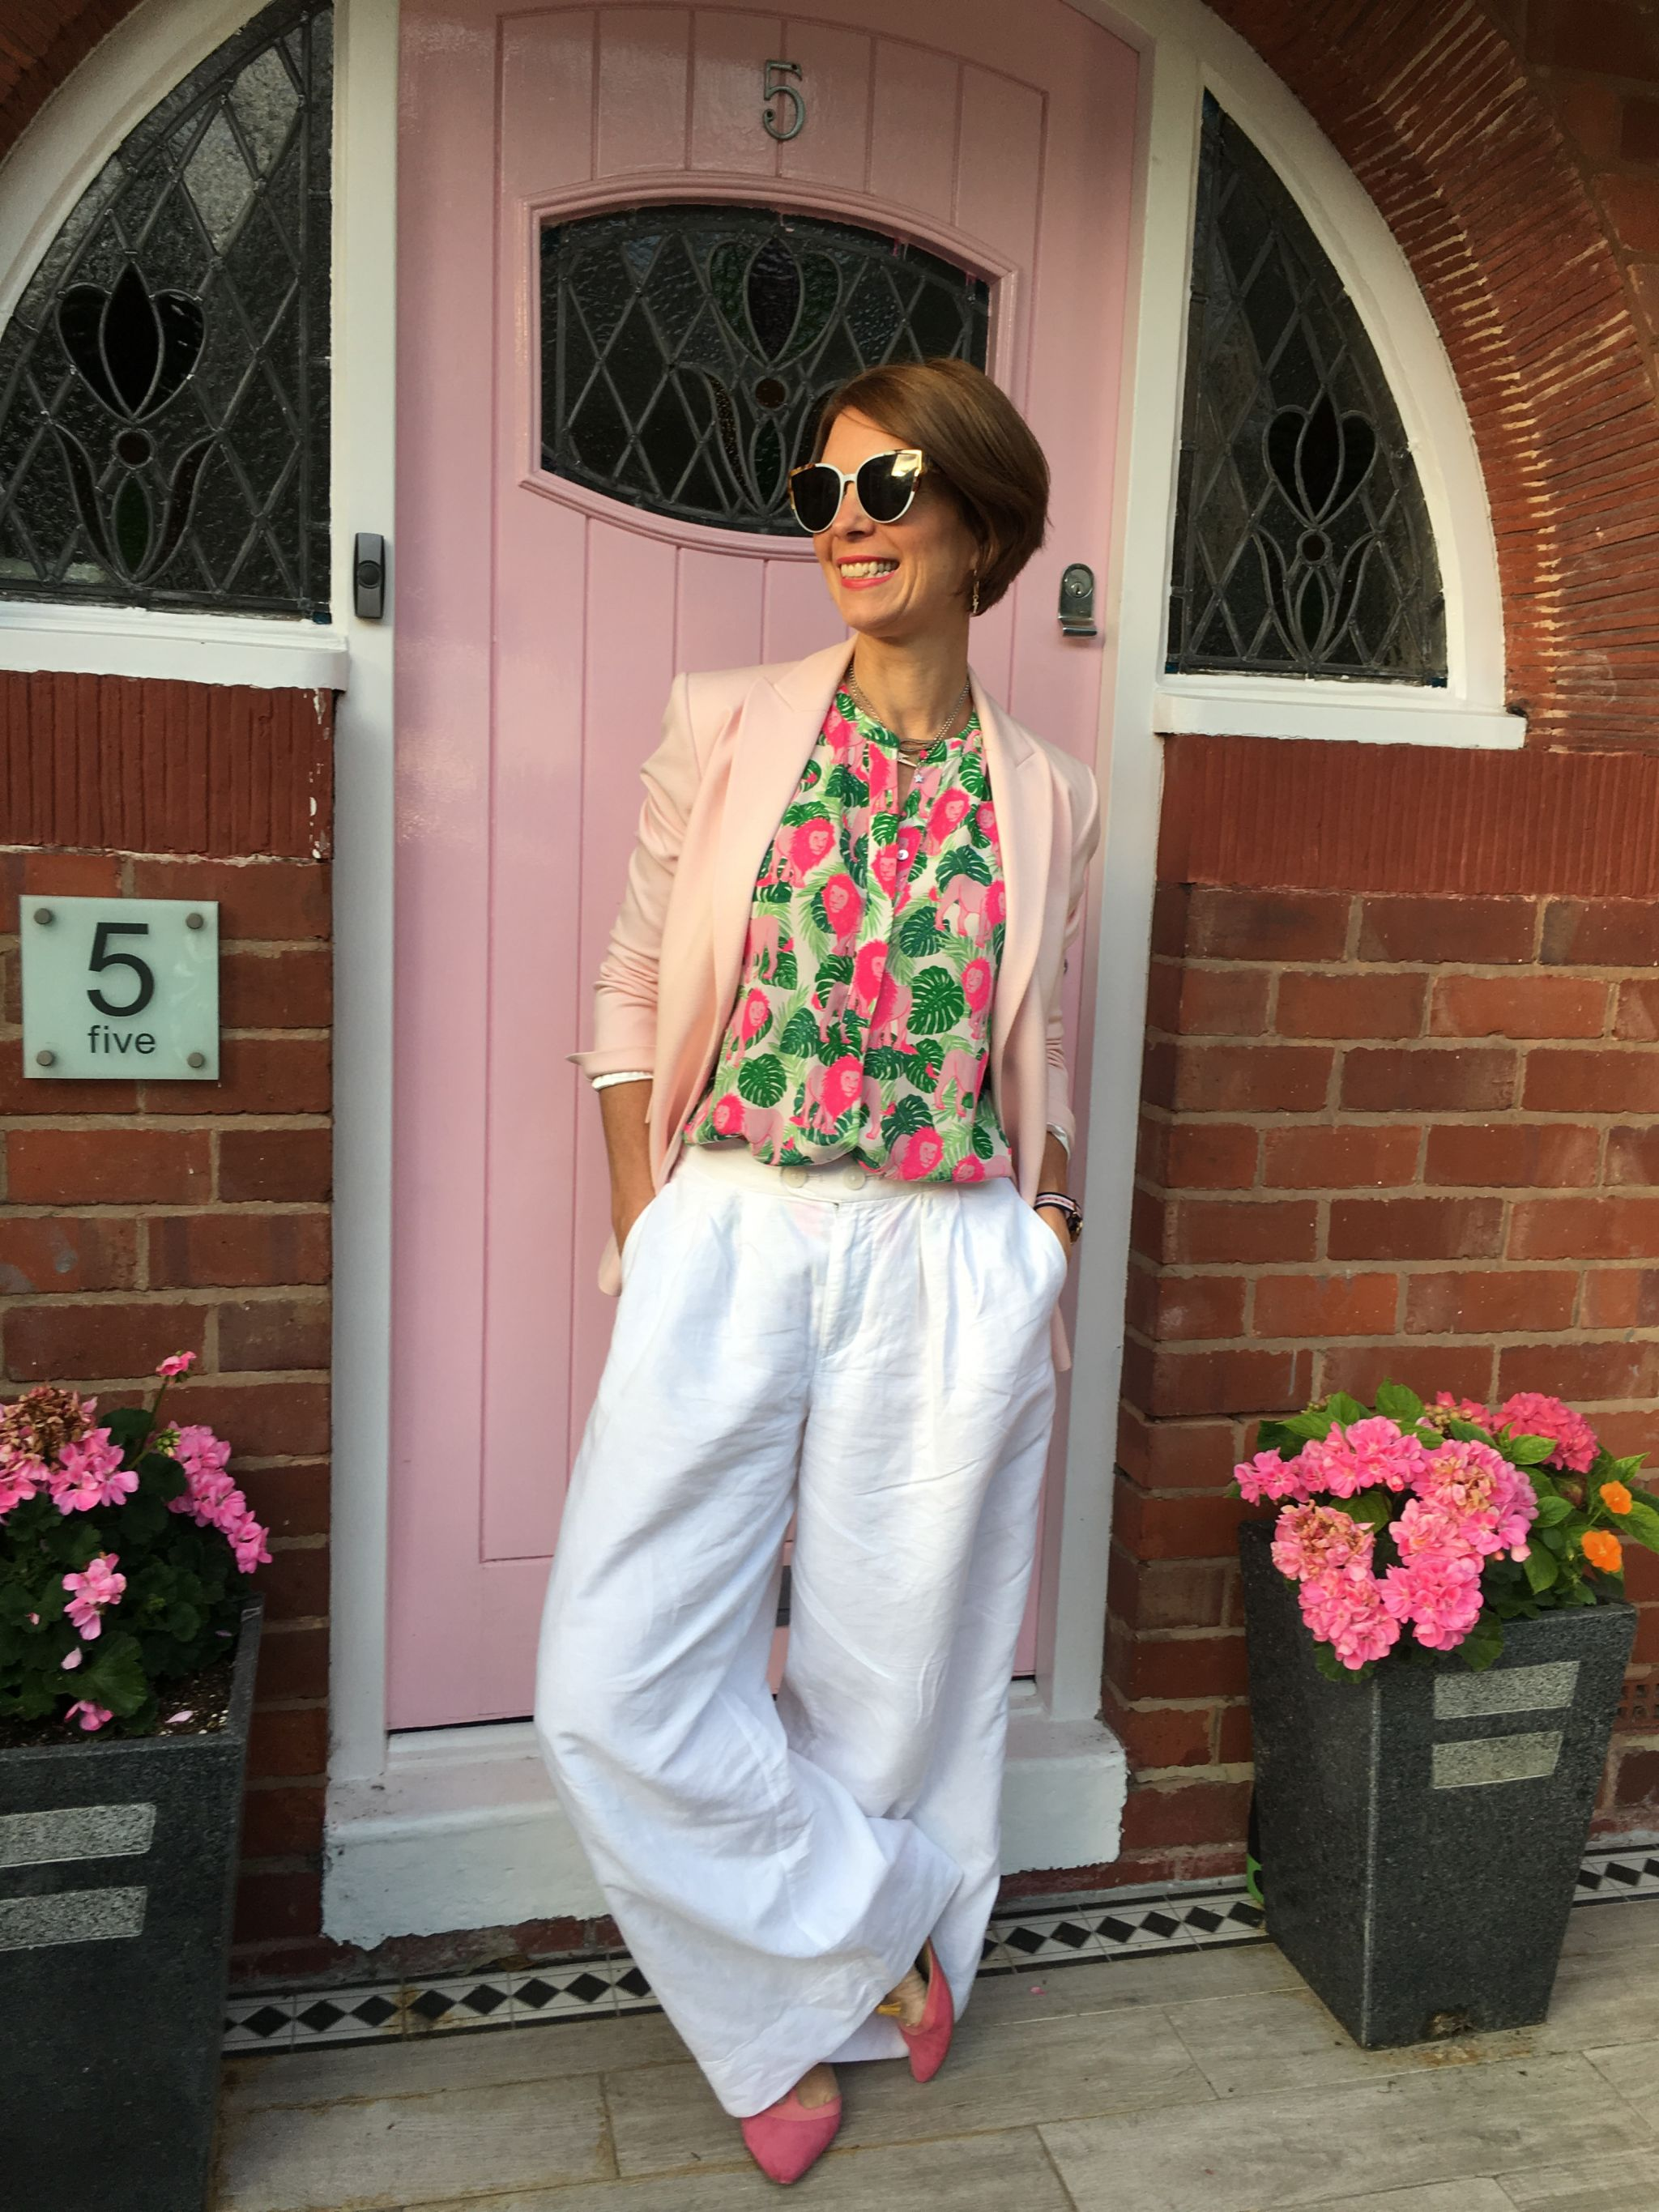 5 summer outfits that don't involve jeans